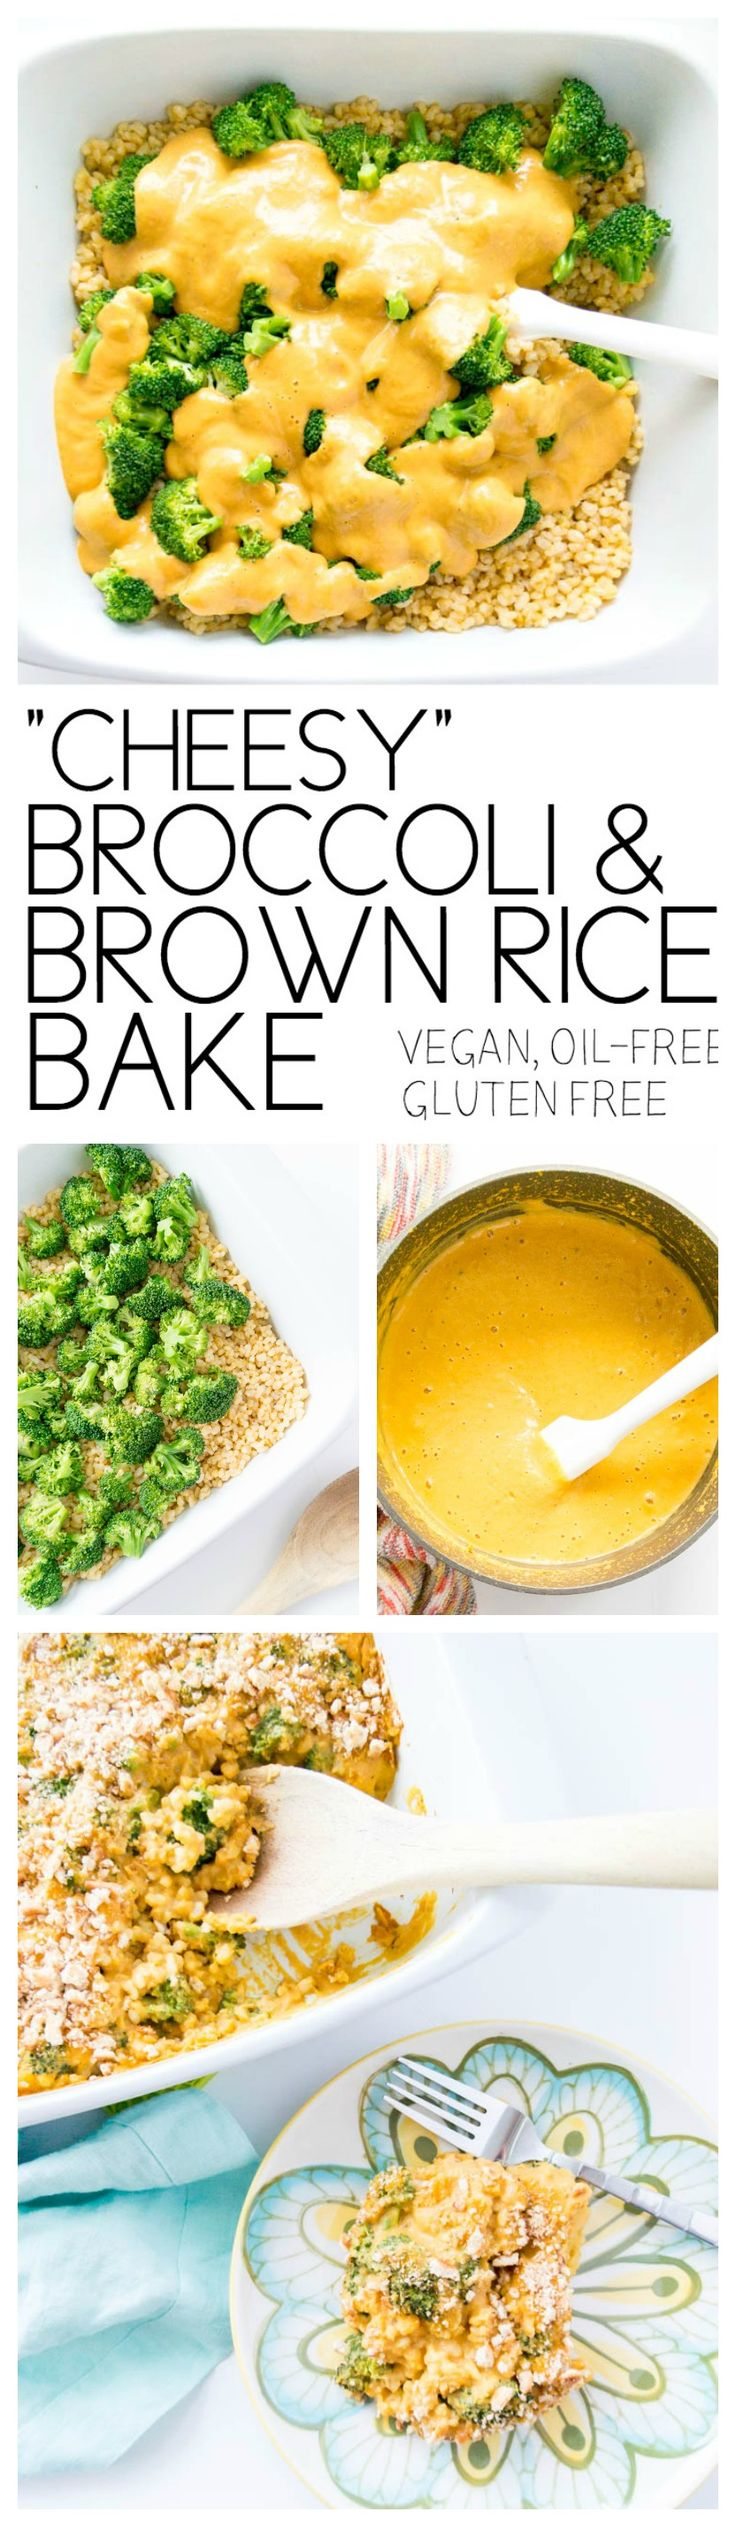 """plant based comfort food // make this """"Cheesy Vegan Broccoli Brown Rice Bake"""" on a cold wintry night! oil free, gluten free, nut free, dairy free & filling! #vegan #cheese #broccoli #casserole"""